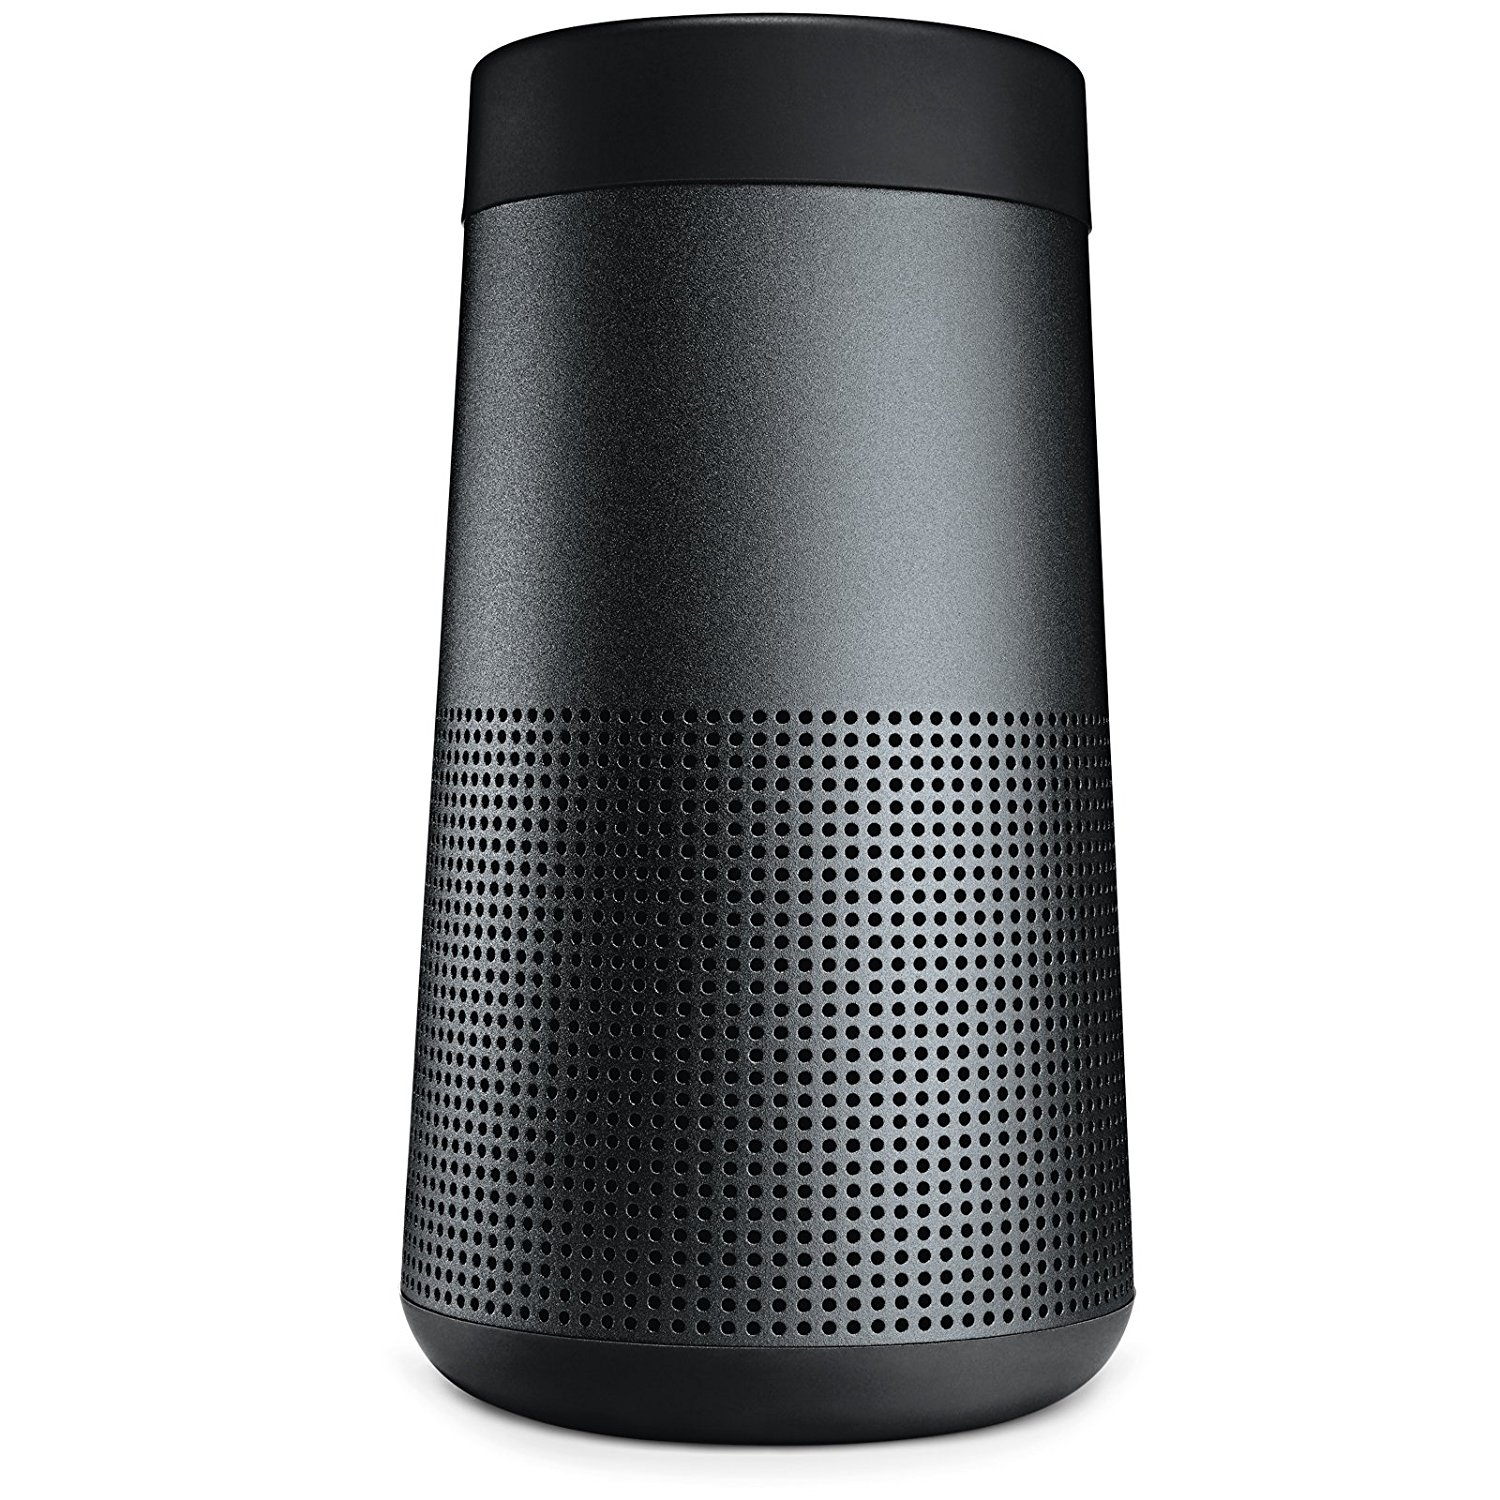 Bose(ボーズ)/SoundLink® Revolve Bluetooth® speaker